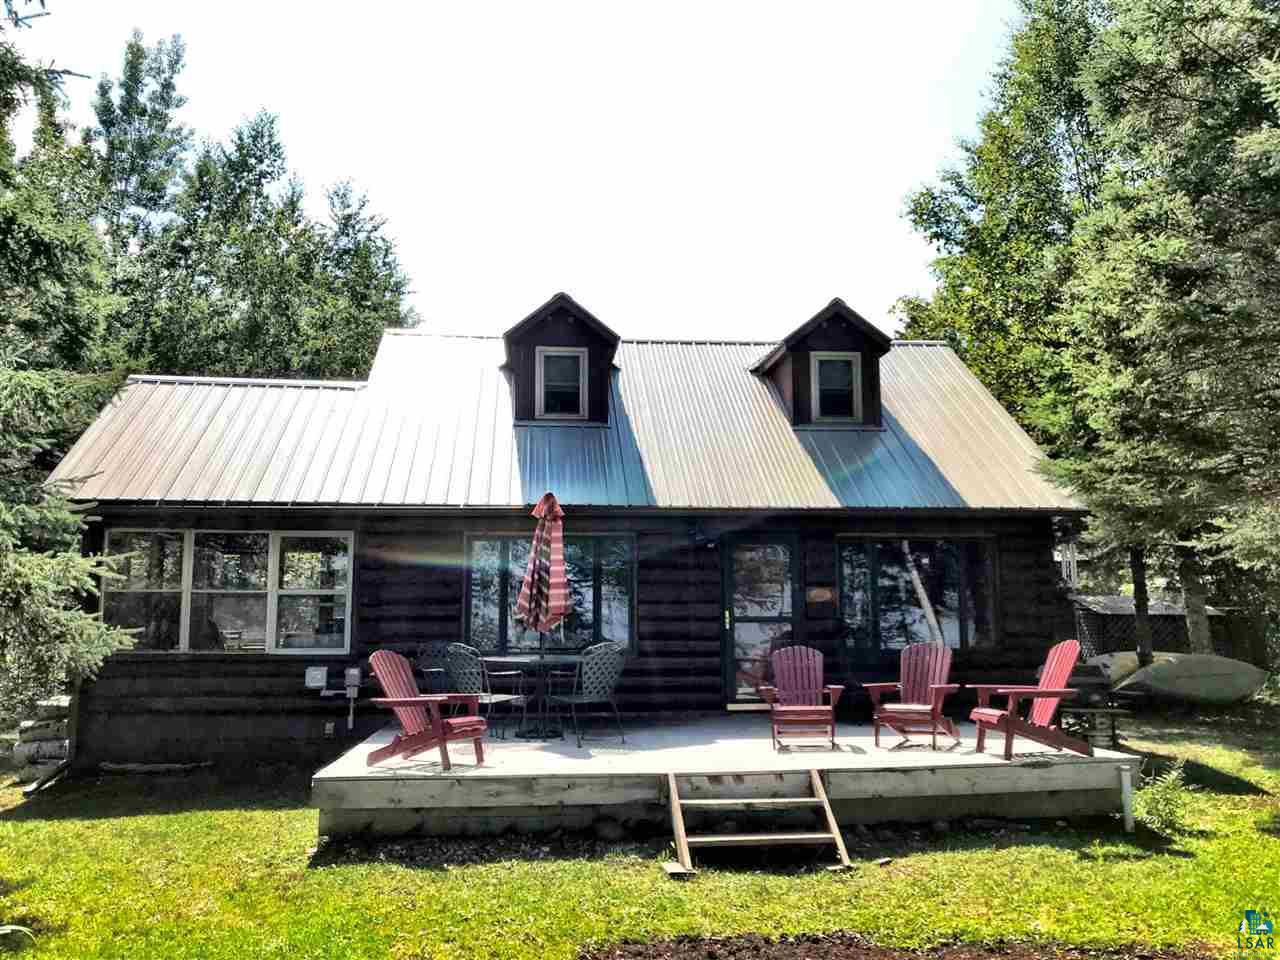 """Log cabin on five acres with 300+/- Lake Superior SAND BEACH!! This opportunity is just that...an """"opportunity"""" with gross yearly rental history near $25k. Being sold """"turnkey"""".Great for swimming, body surfing or wading with a pole in hand. Cabin is quaint and comfortable. On demand hot water heater,water softening unit-both high end. New large wood burning stove and new washer/dryer. Private & peaceful location at the end of dead end road. Located near Bayfield/Douglas County line making Duluth about 30 minutes away and the South Shore villages along Lake Superior including Cornucopia even less. Come look at this one today, as I don't expect it will last long!"""